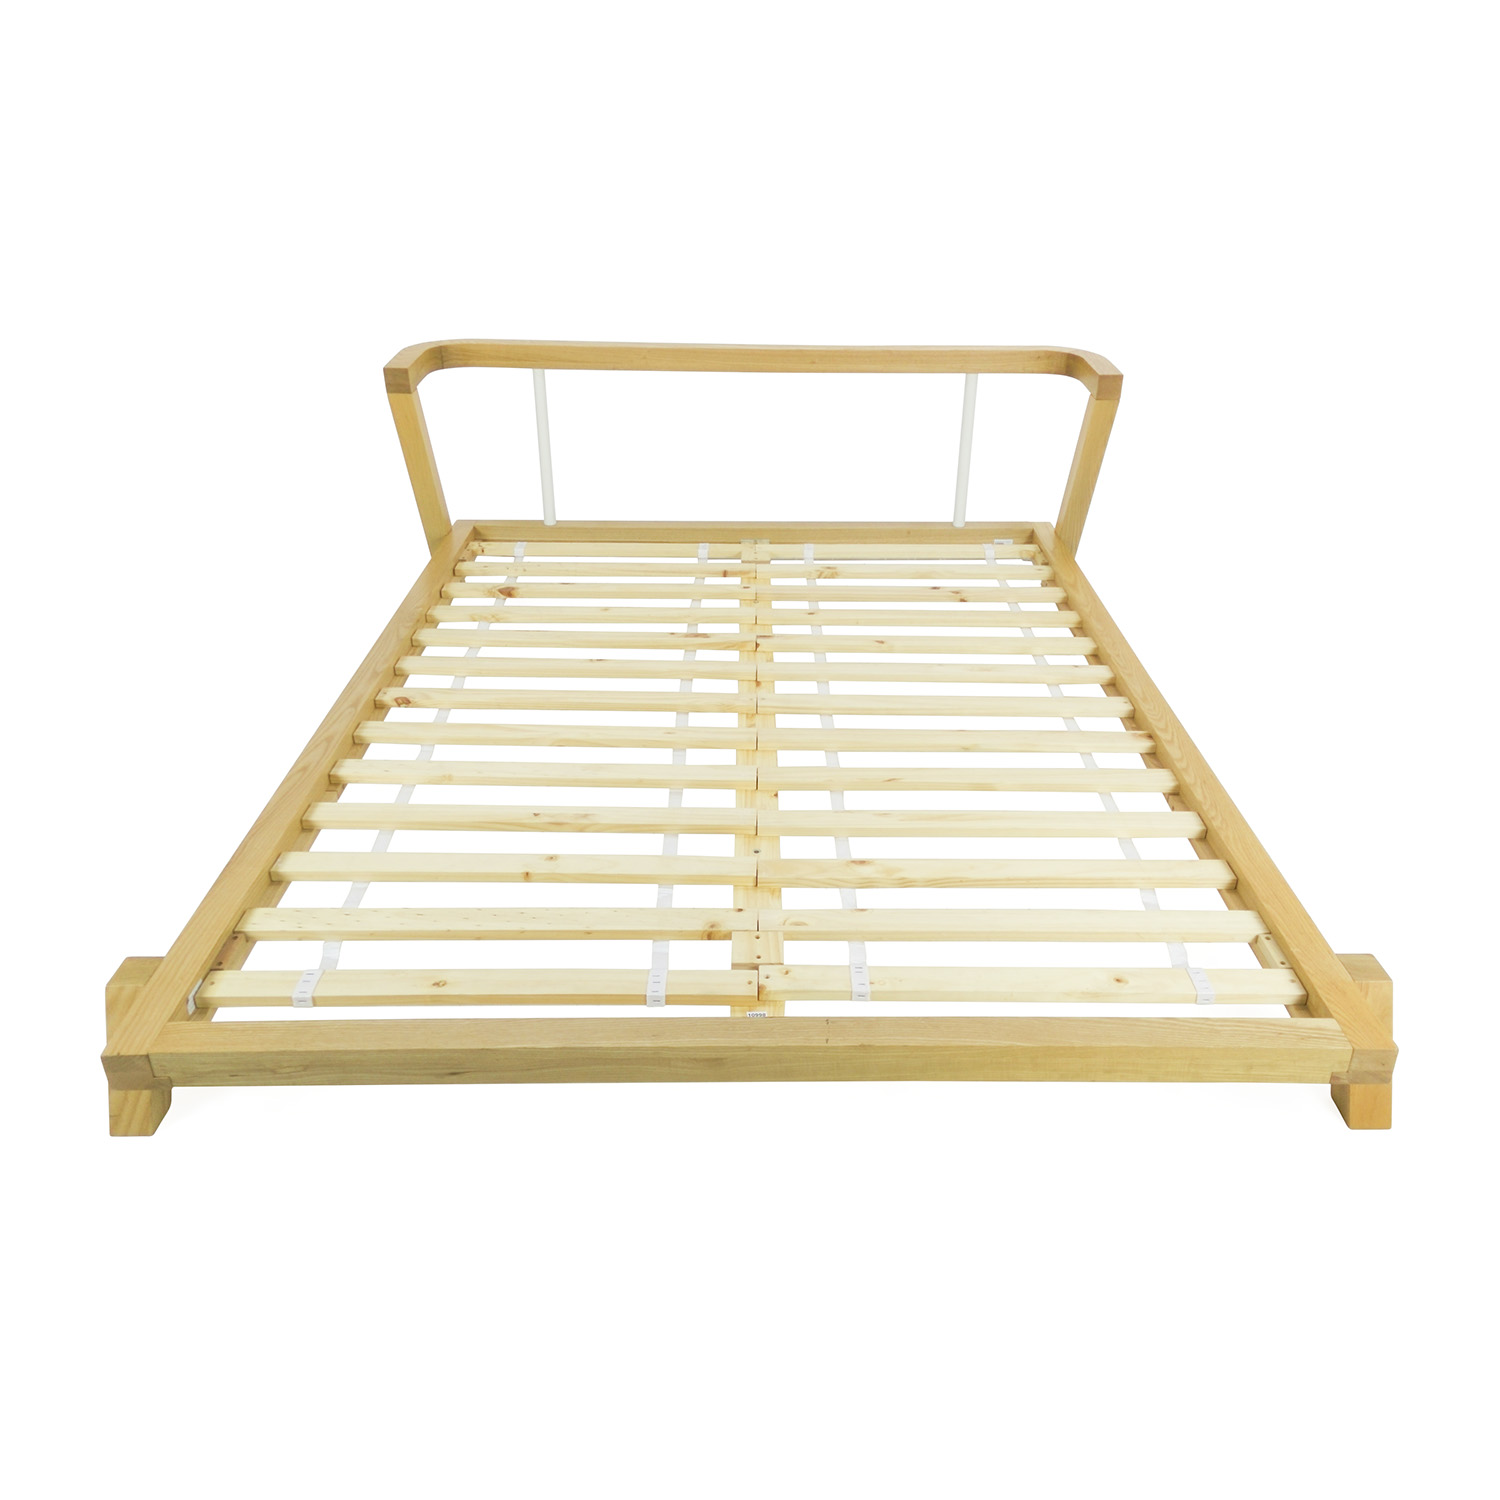 shop cb2 siesta queen size bed cb2 bed frames